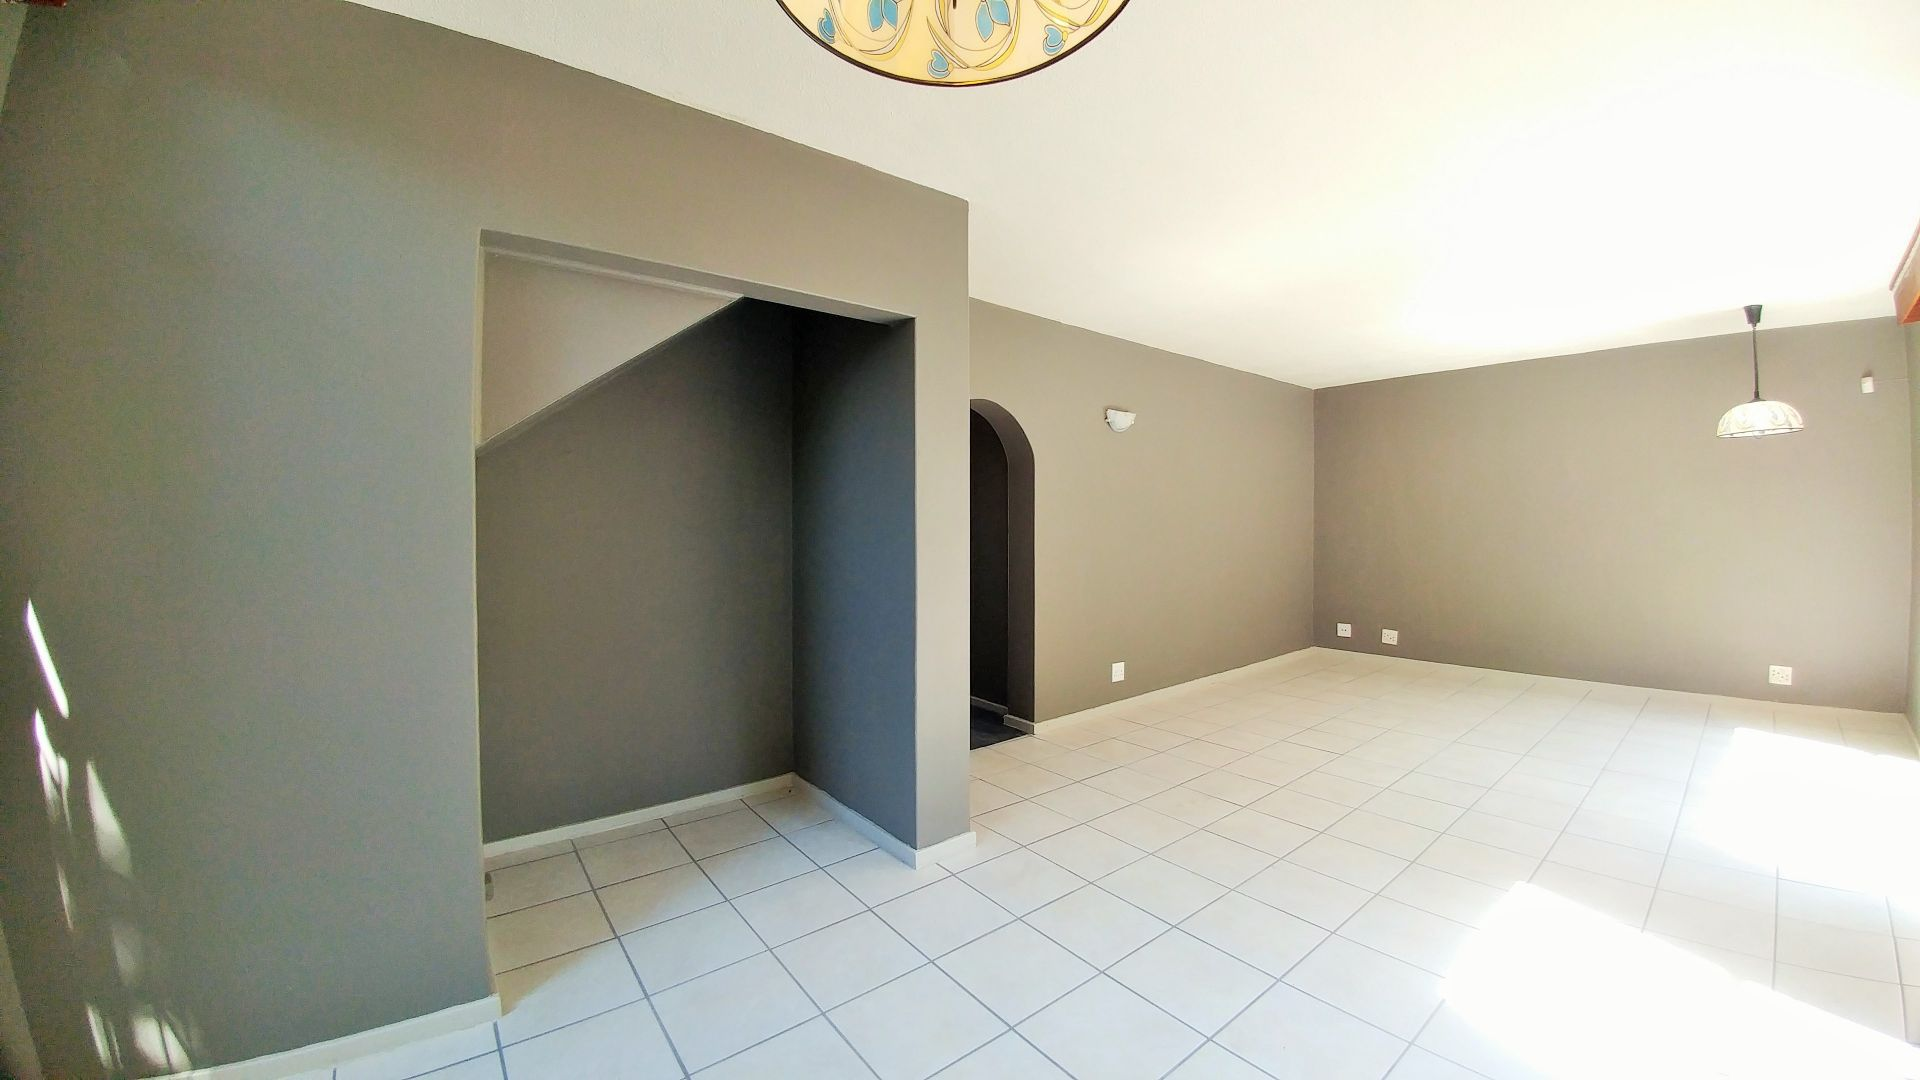 Potchefstroom Central property for sale. Ref No: 13547446. Picture no 10